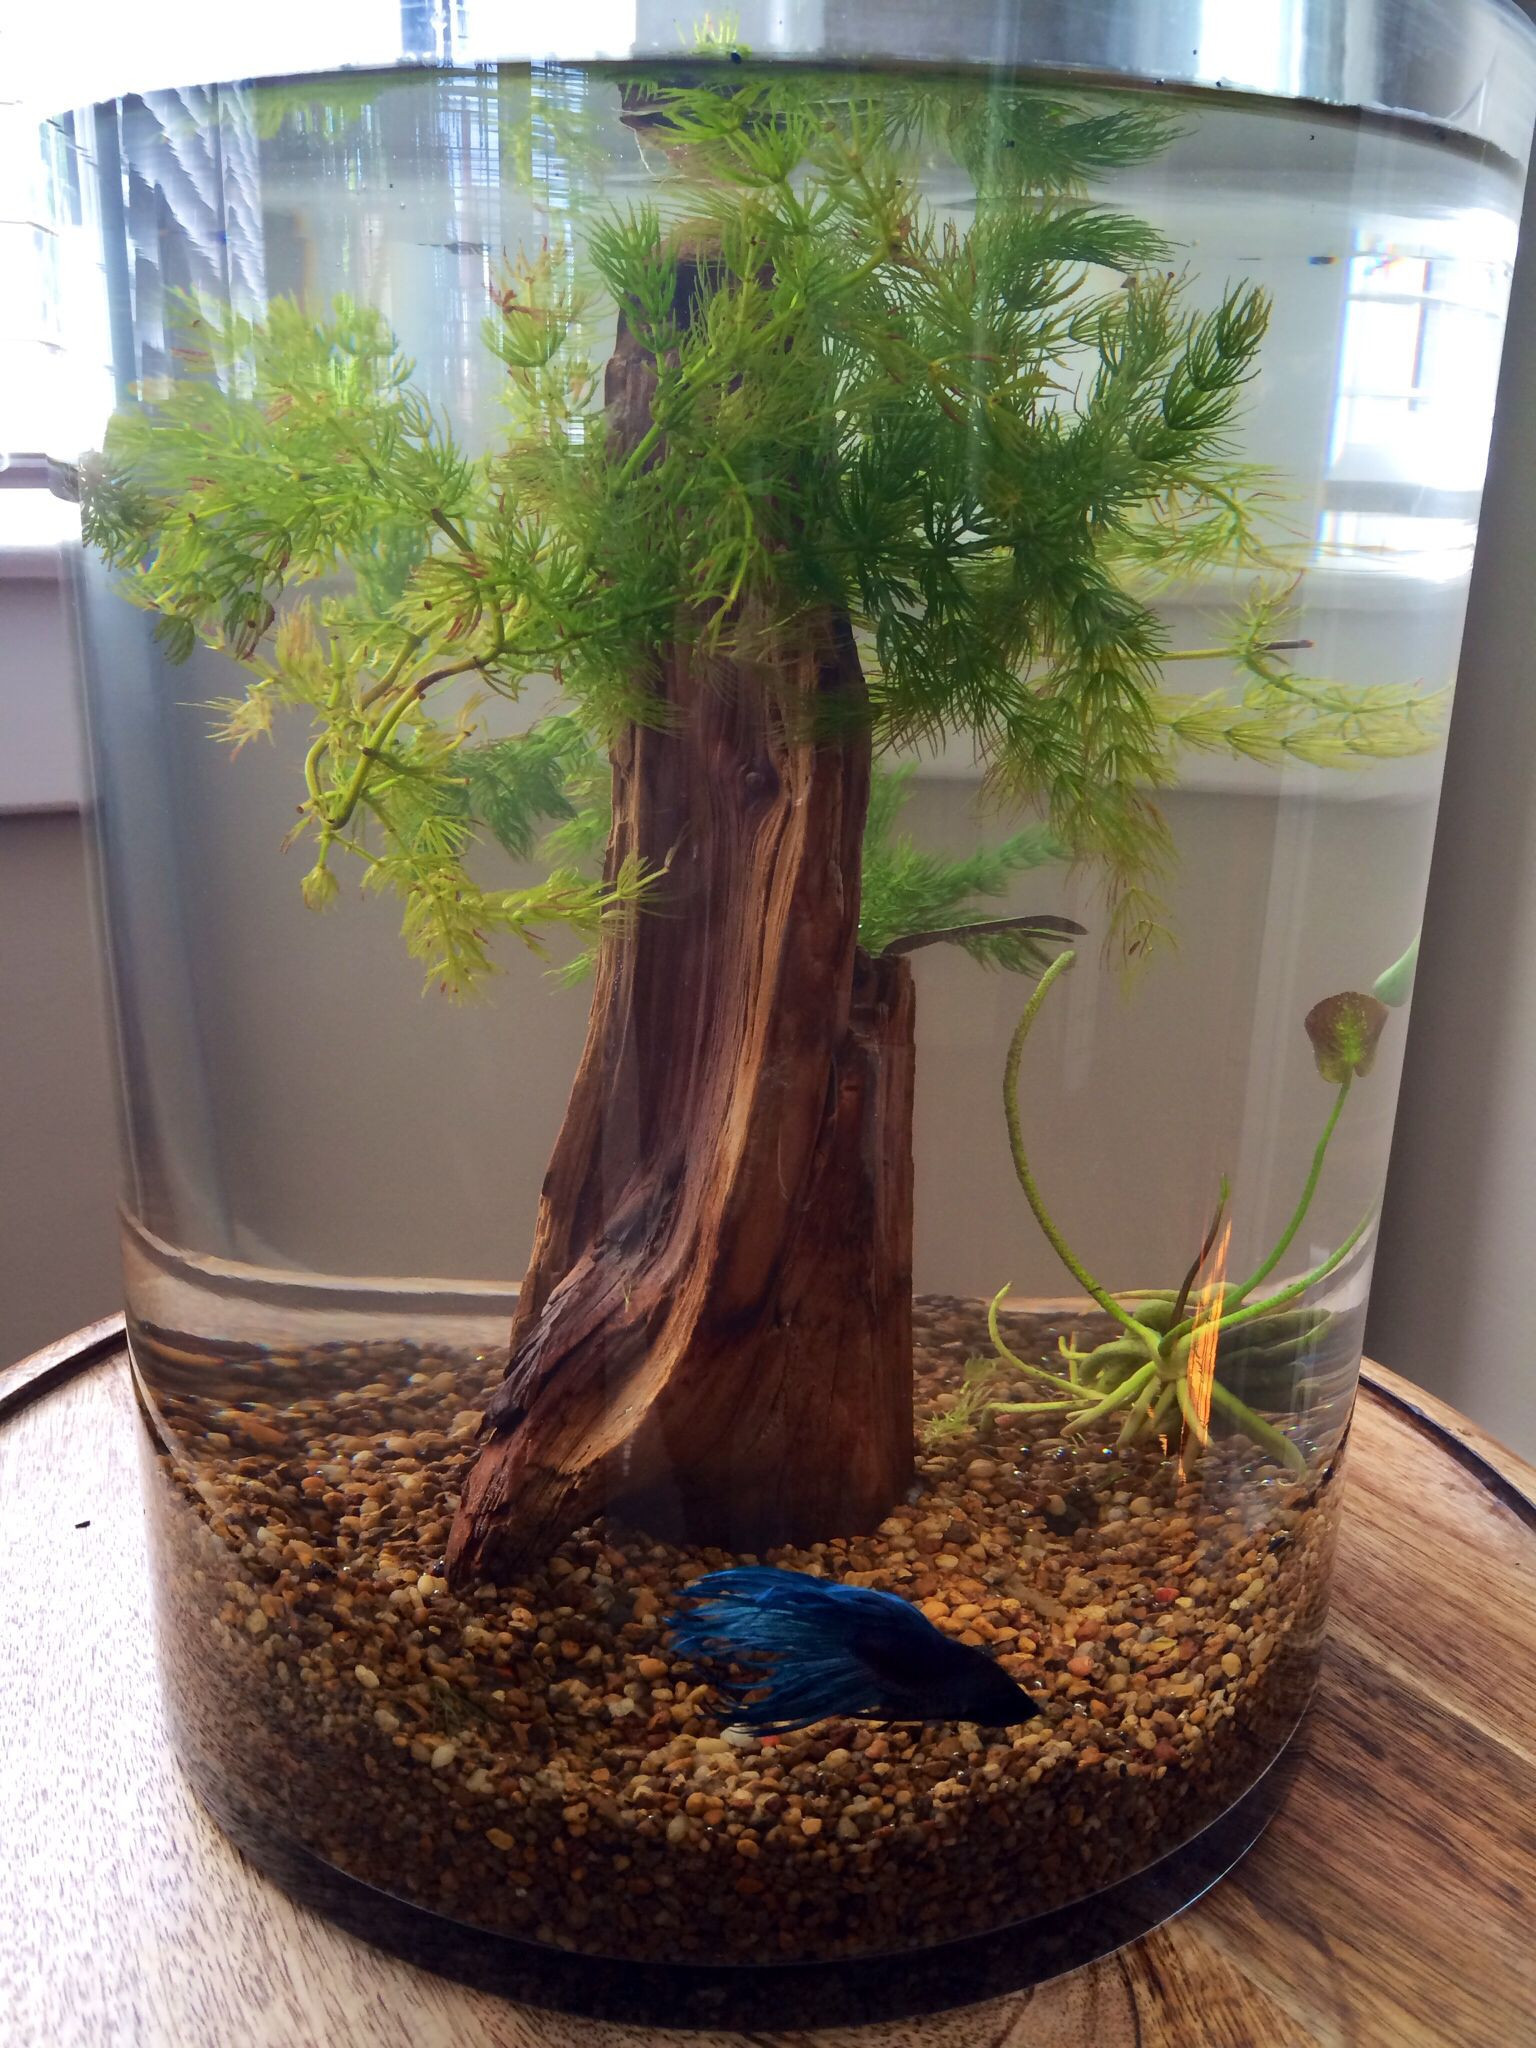 27 Stunning Betta Fish Vase with Bamboo